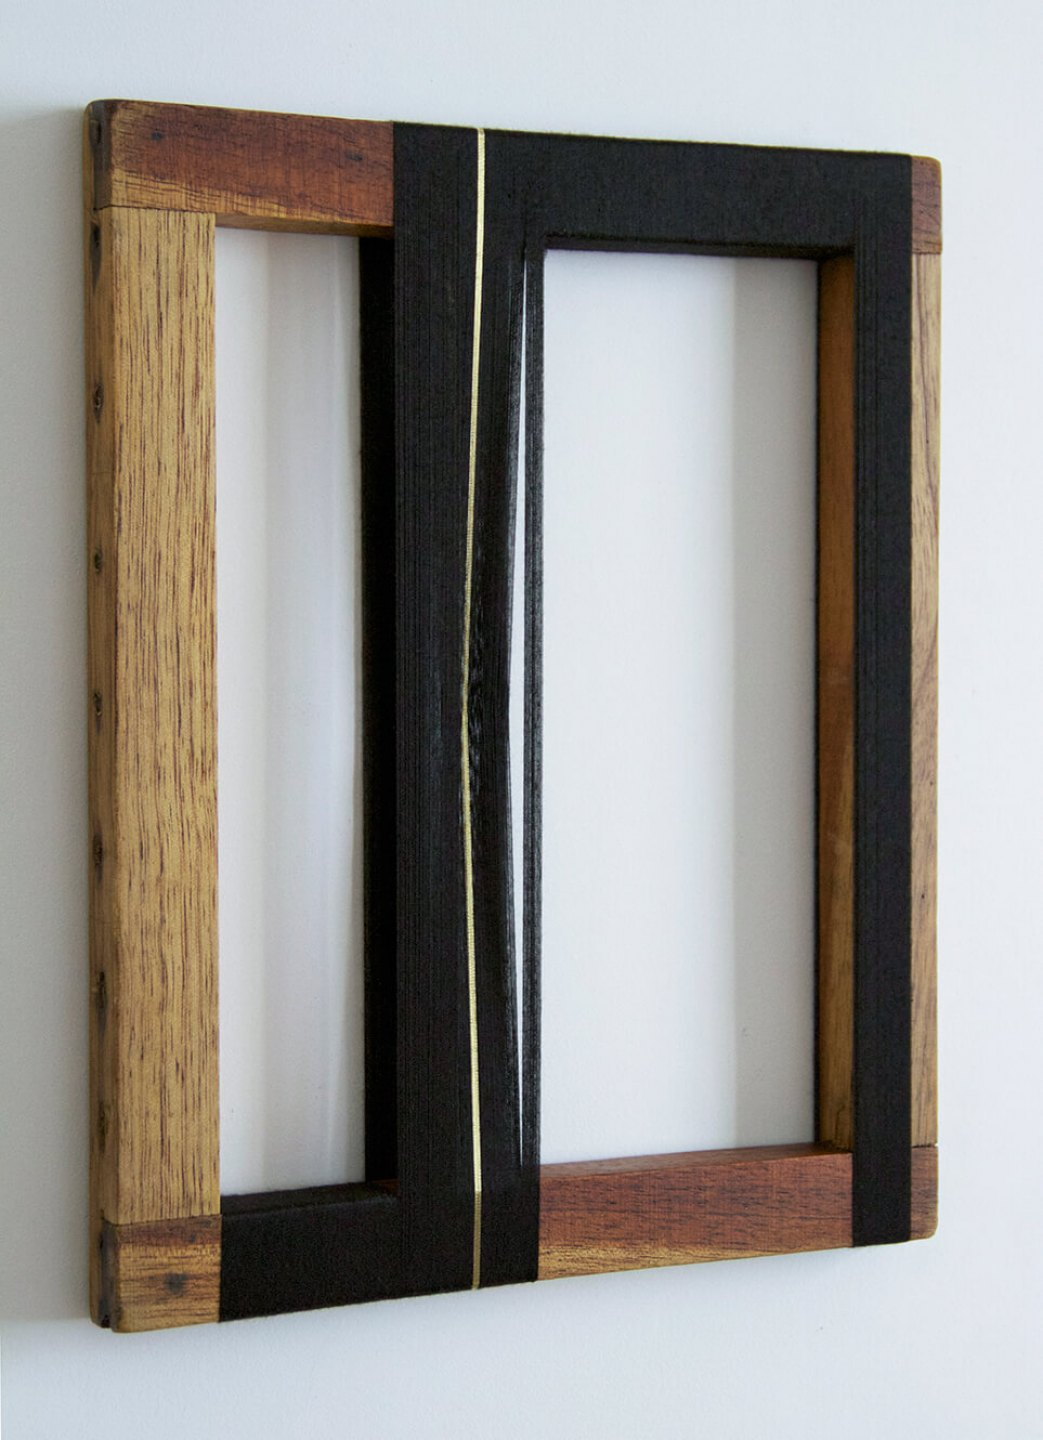 Paloma Bosquê, <em>Rhythm</em>, 2014, lurex threads and polyester on wood frame, 30,5 × 24,5 cm - Mendes Wood DM